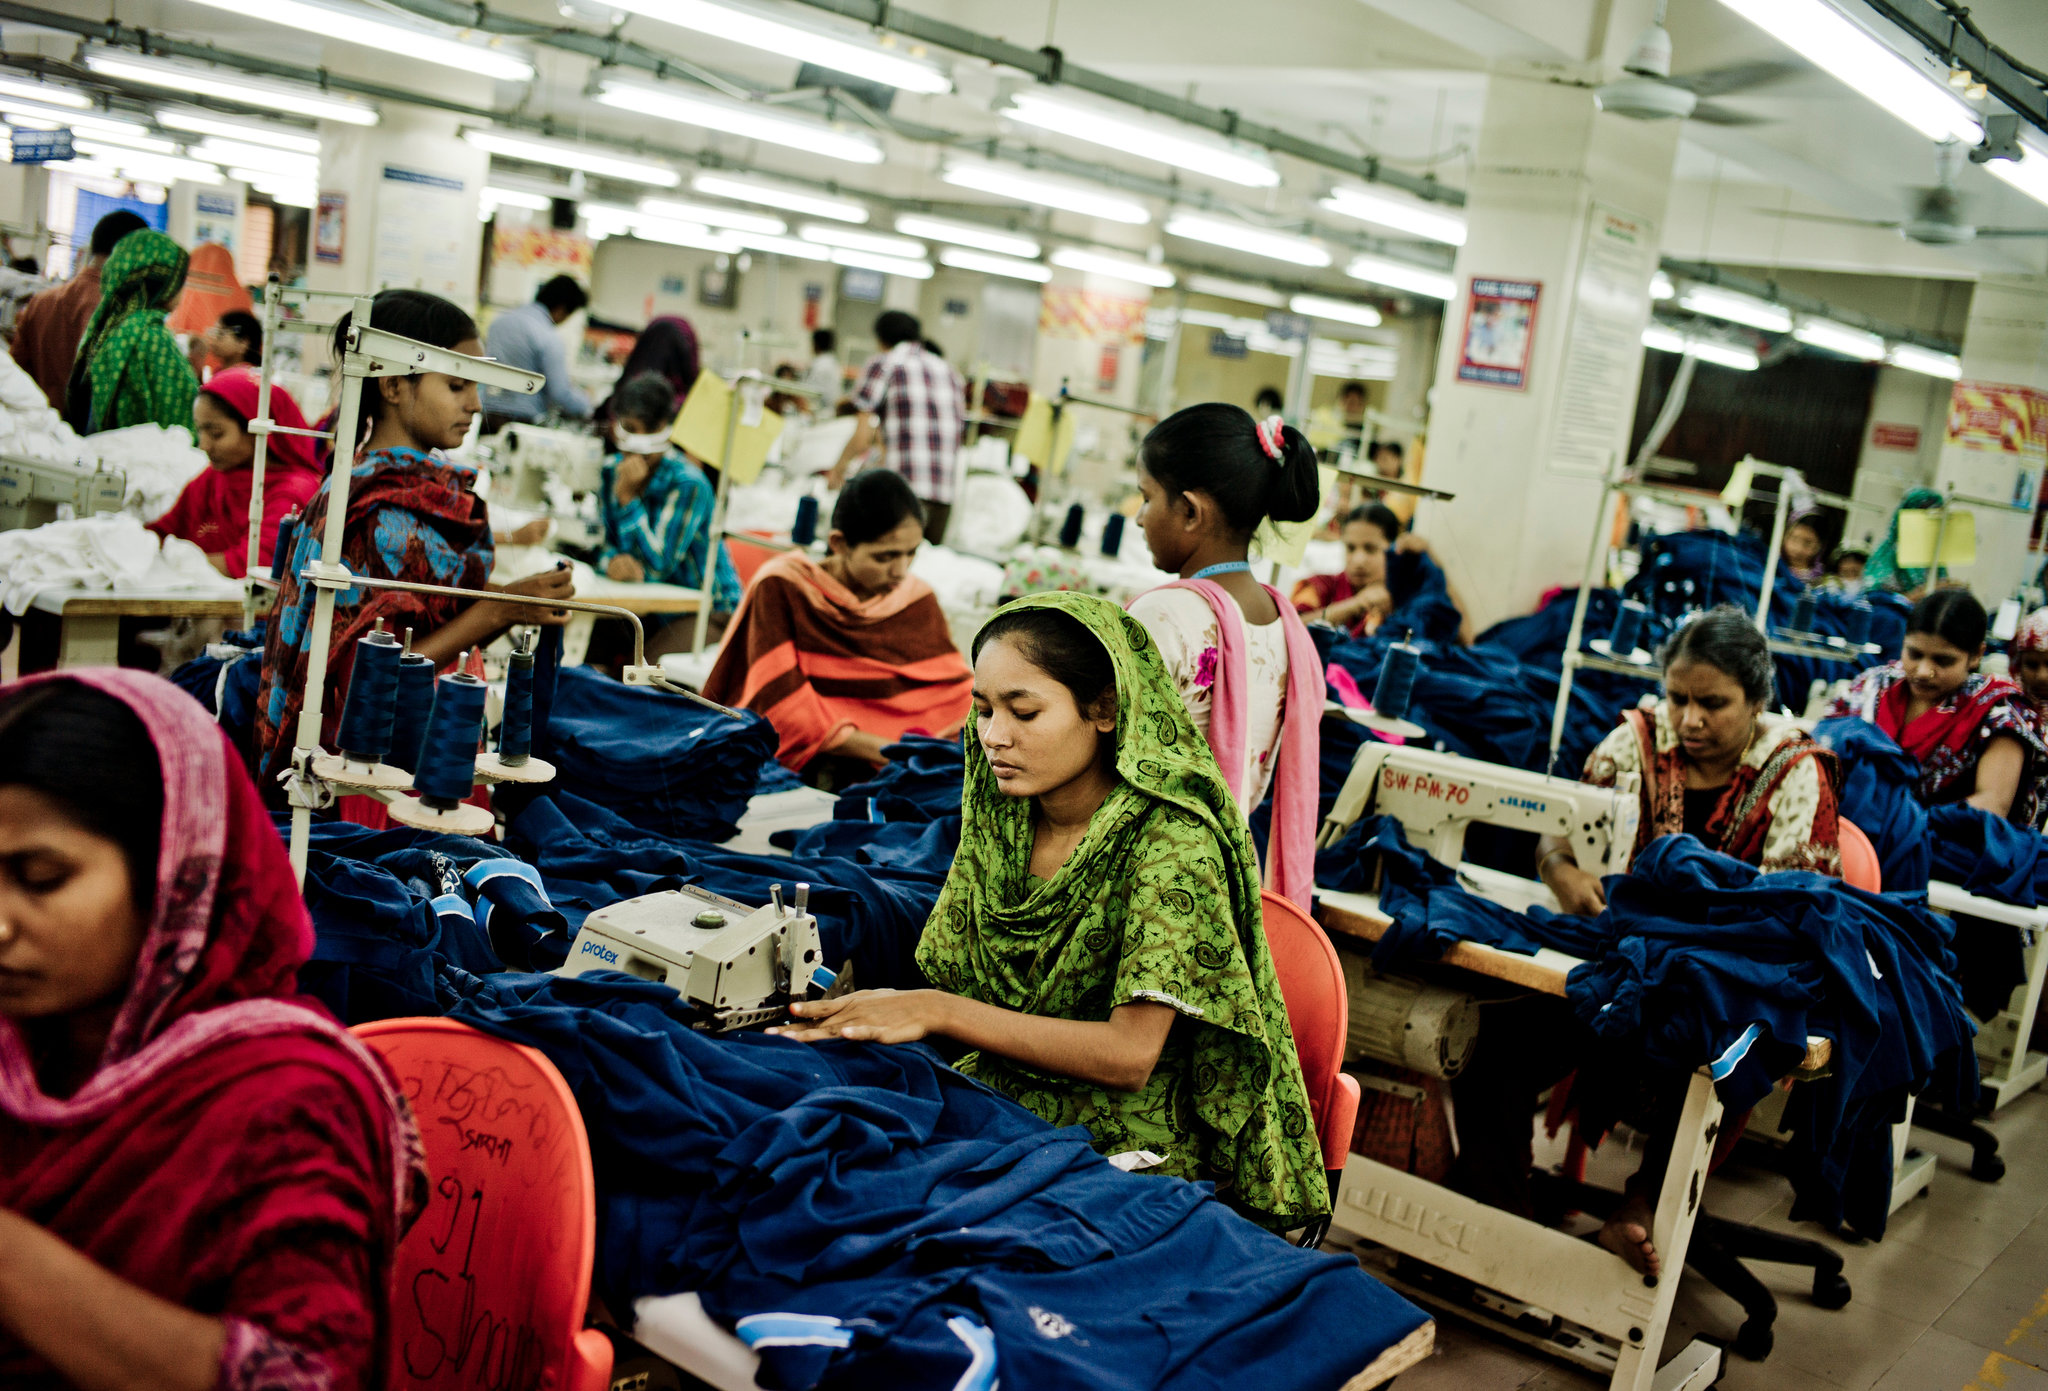 The huge decline in textile sales is reported